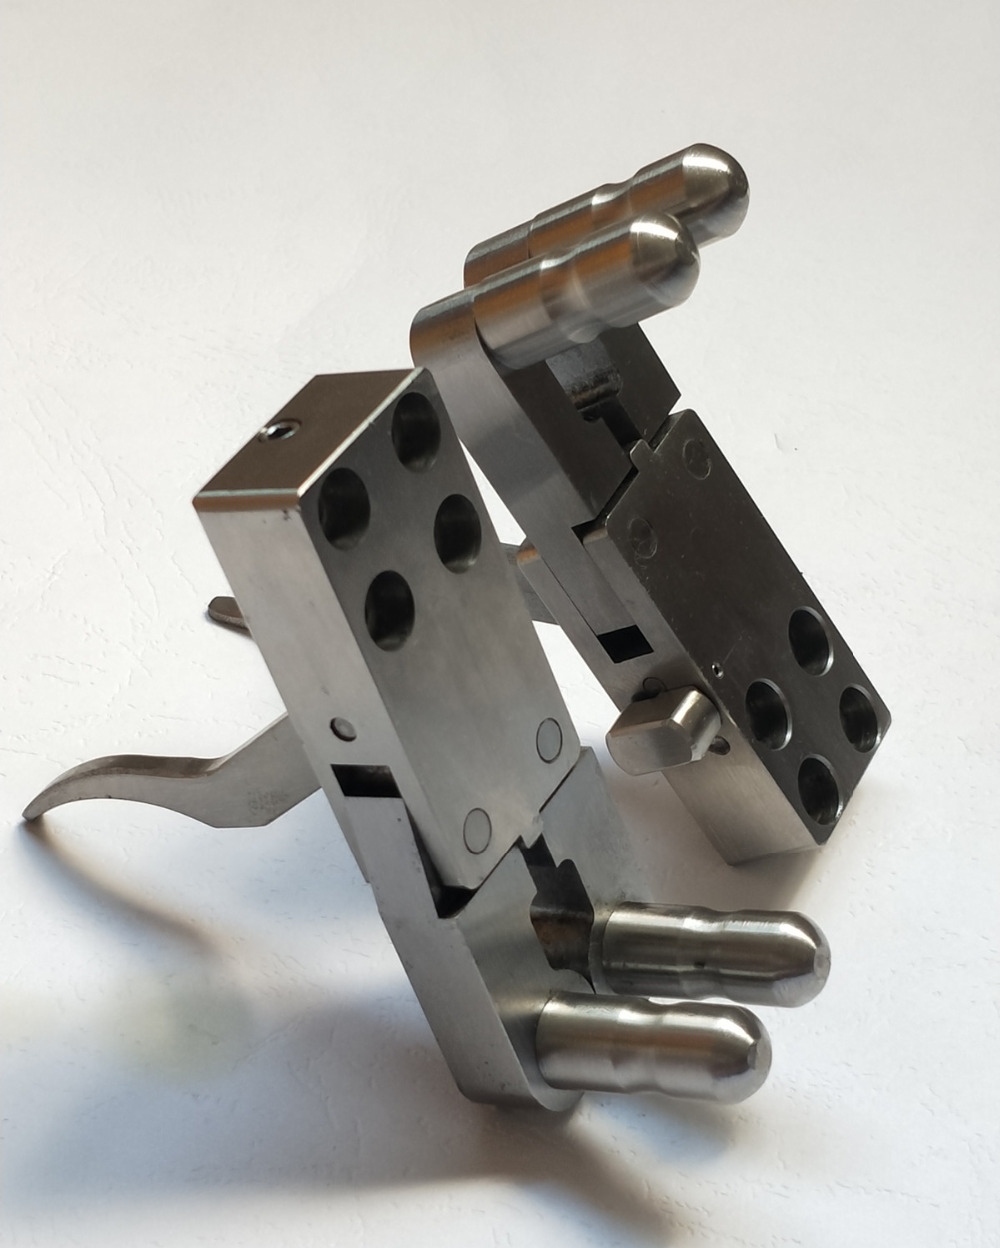 Top heavy slingshot release device Carbon steel stainless steel quenching treatment Super hardness Precision combination